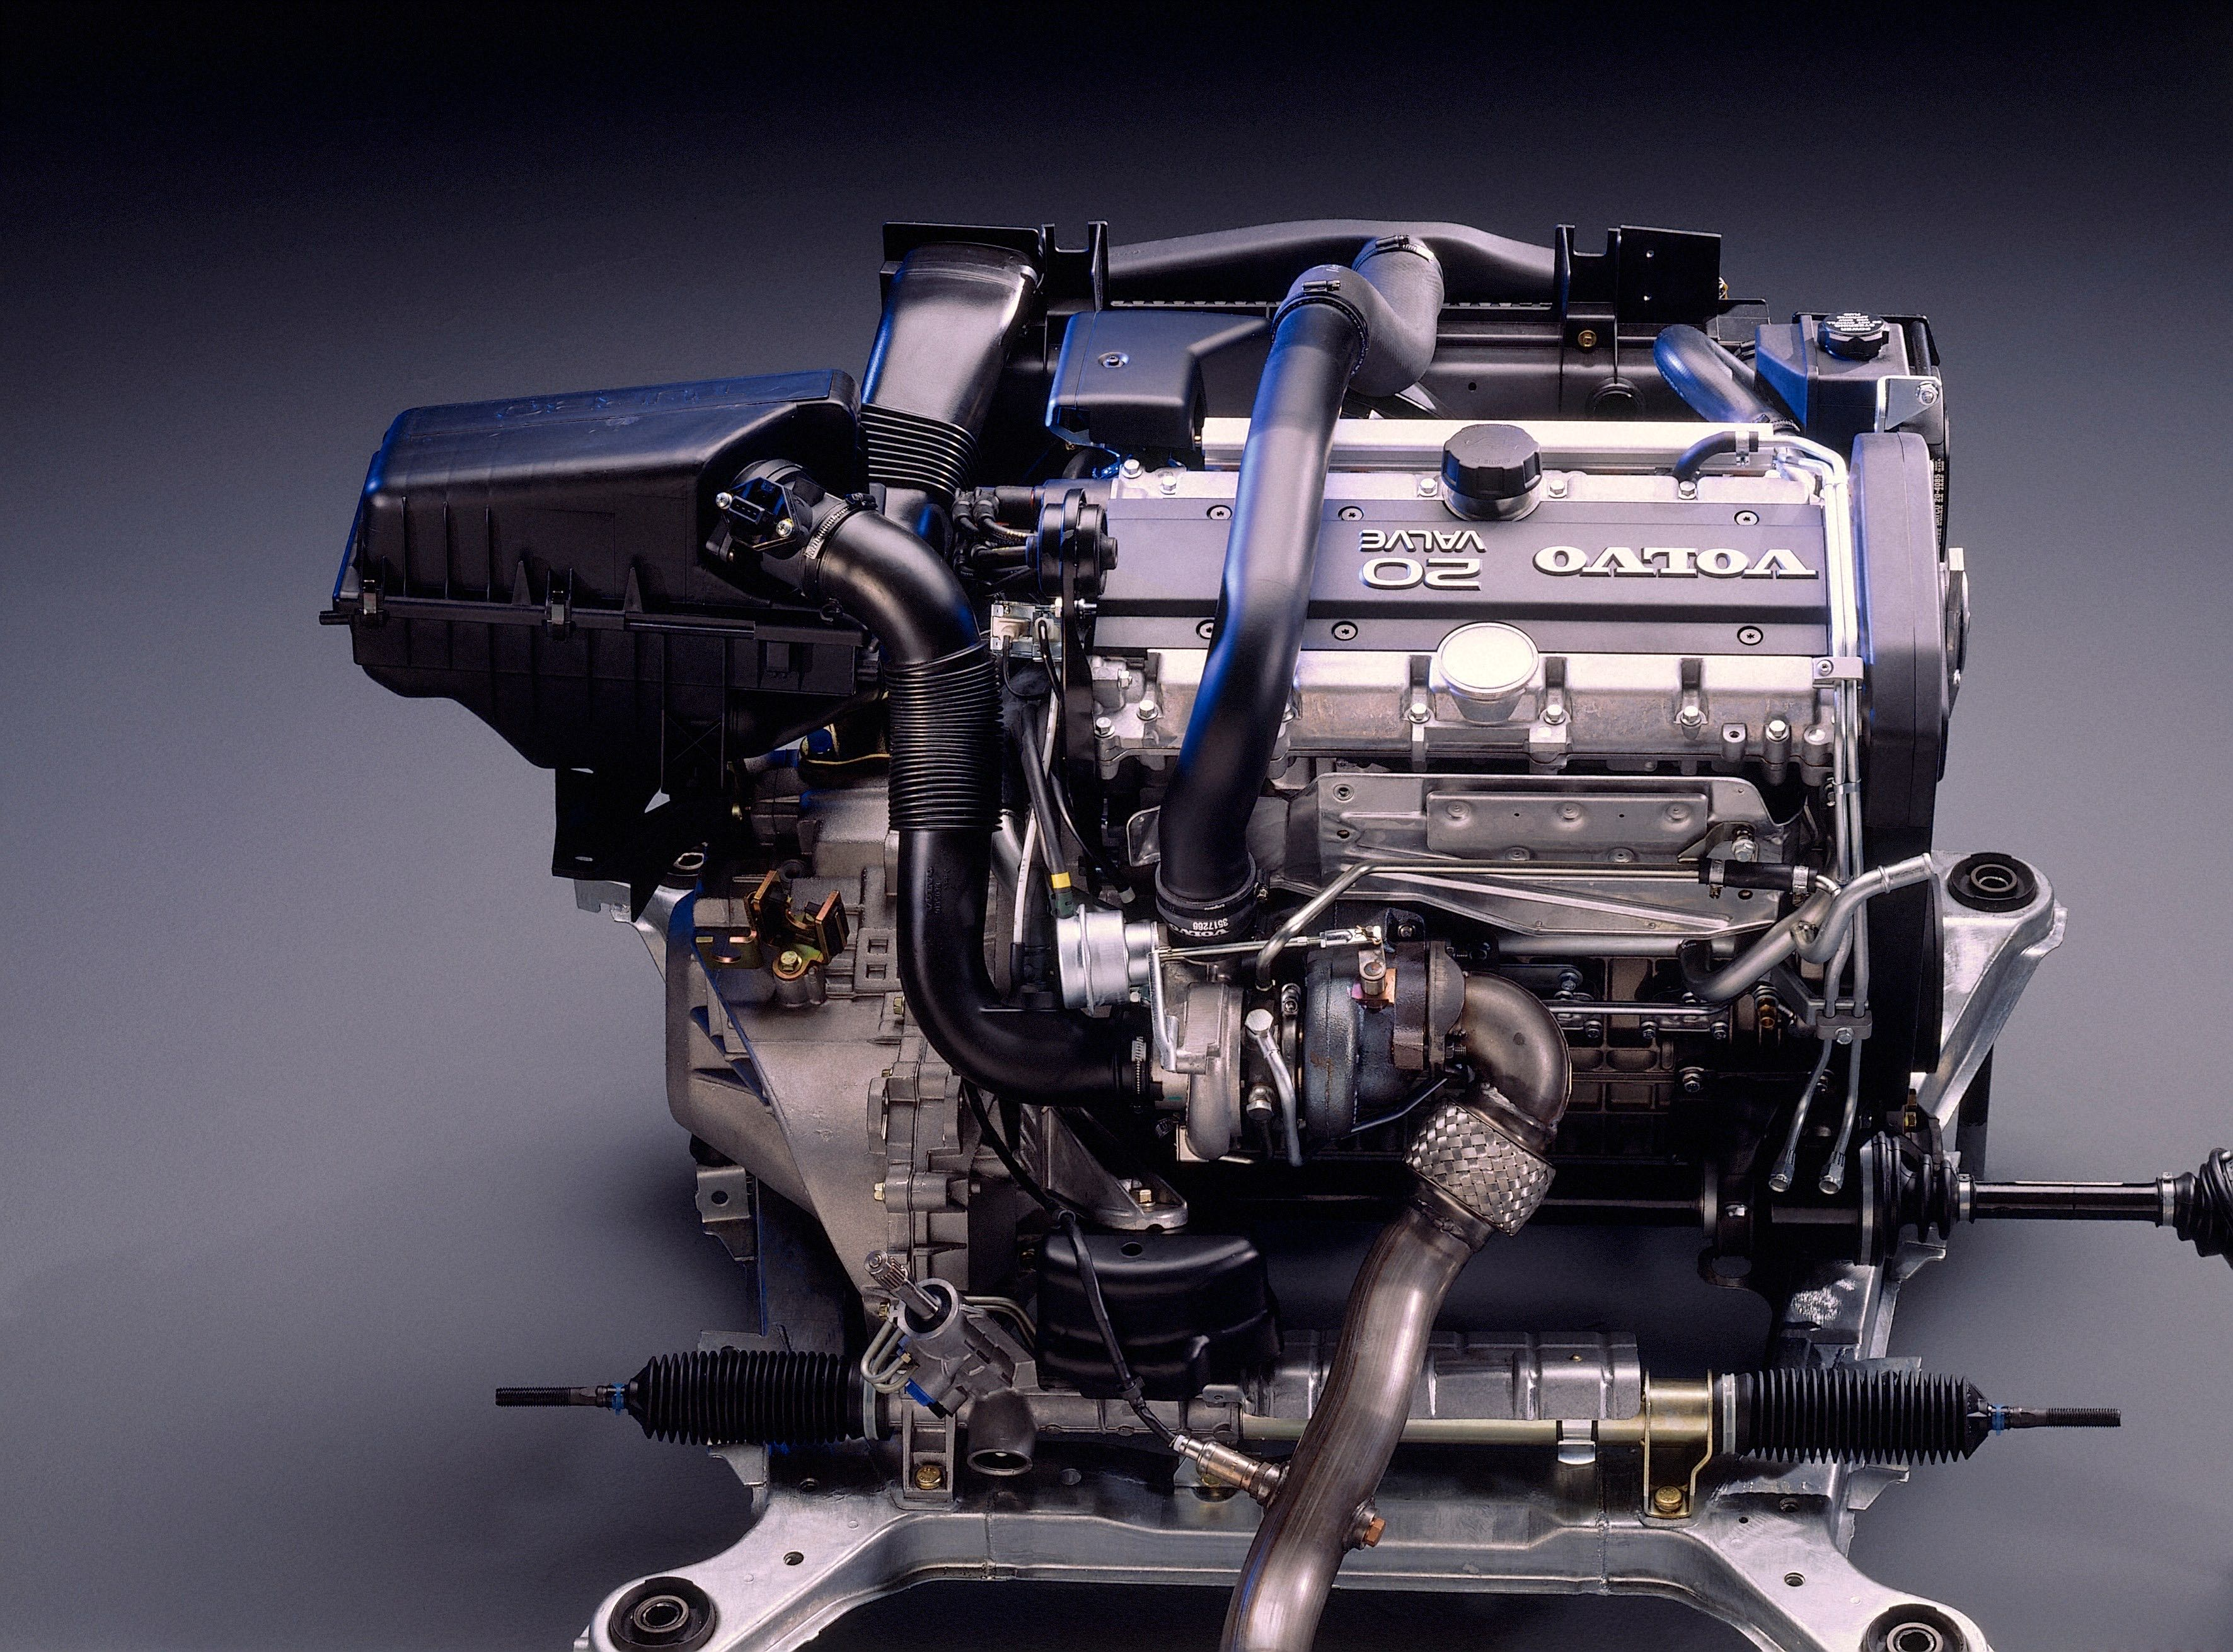 Volvo 850 -  850, engine, Historical, Images, Other, Technology